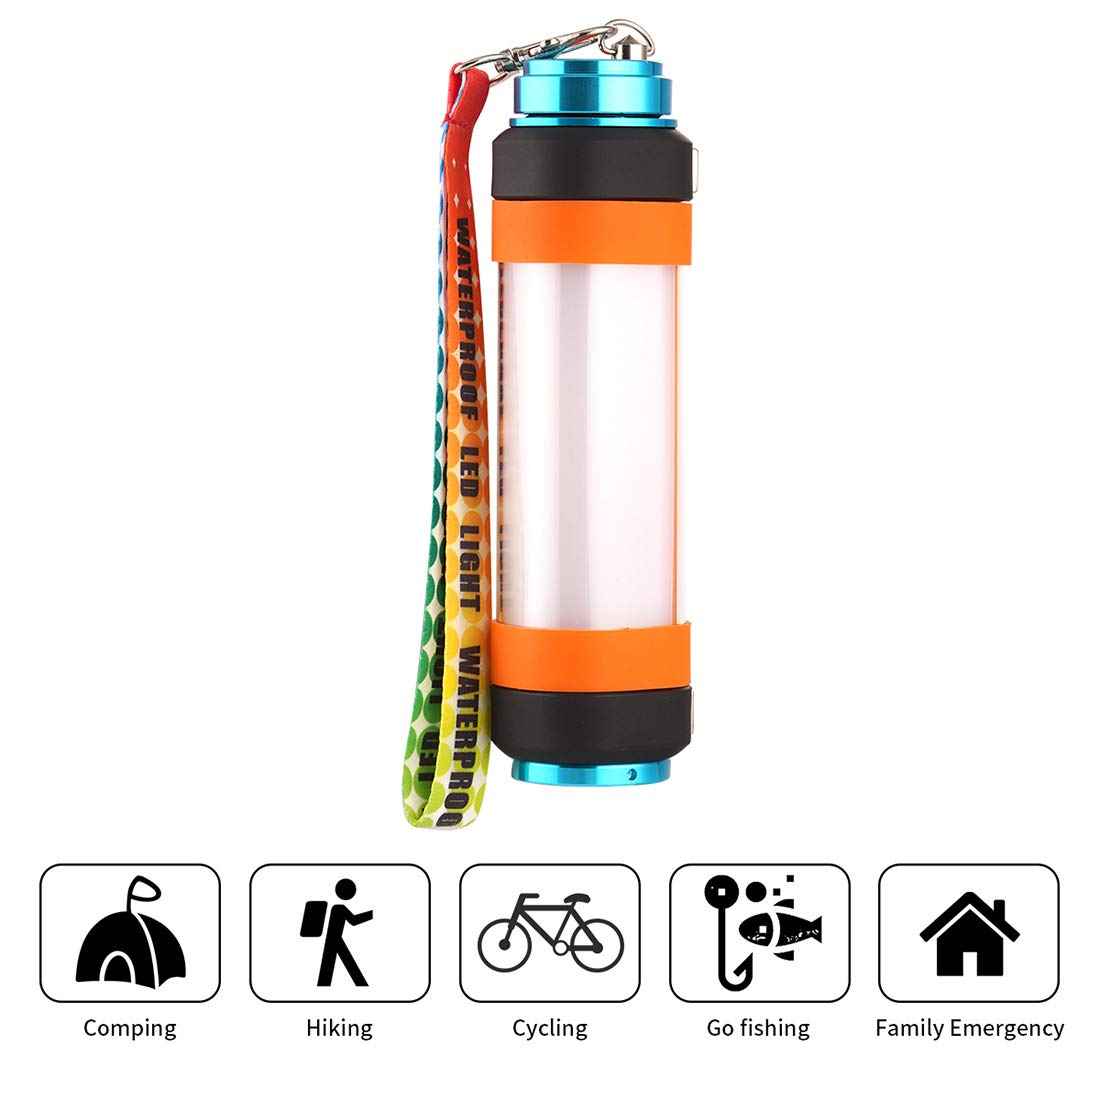 Camping Lights Camping Lantern, Rechargeable Flashlight Magnetic Flashlight Waterproof, Emergency Light 6 Light Modes, Camping Gear for Hiking, Backpacking flashlight-3w